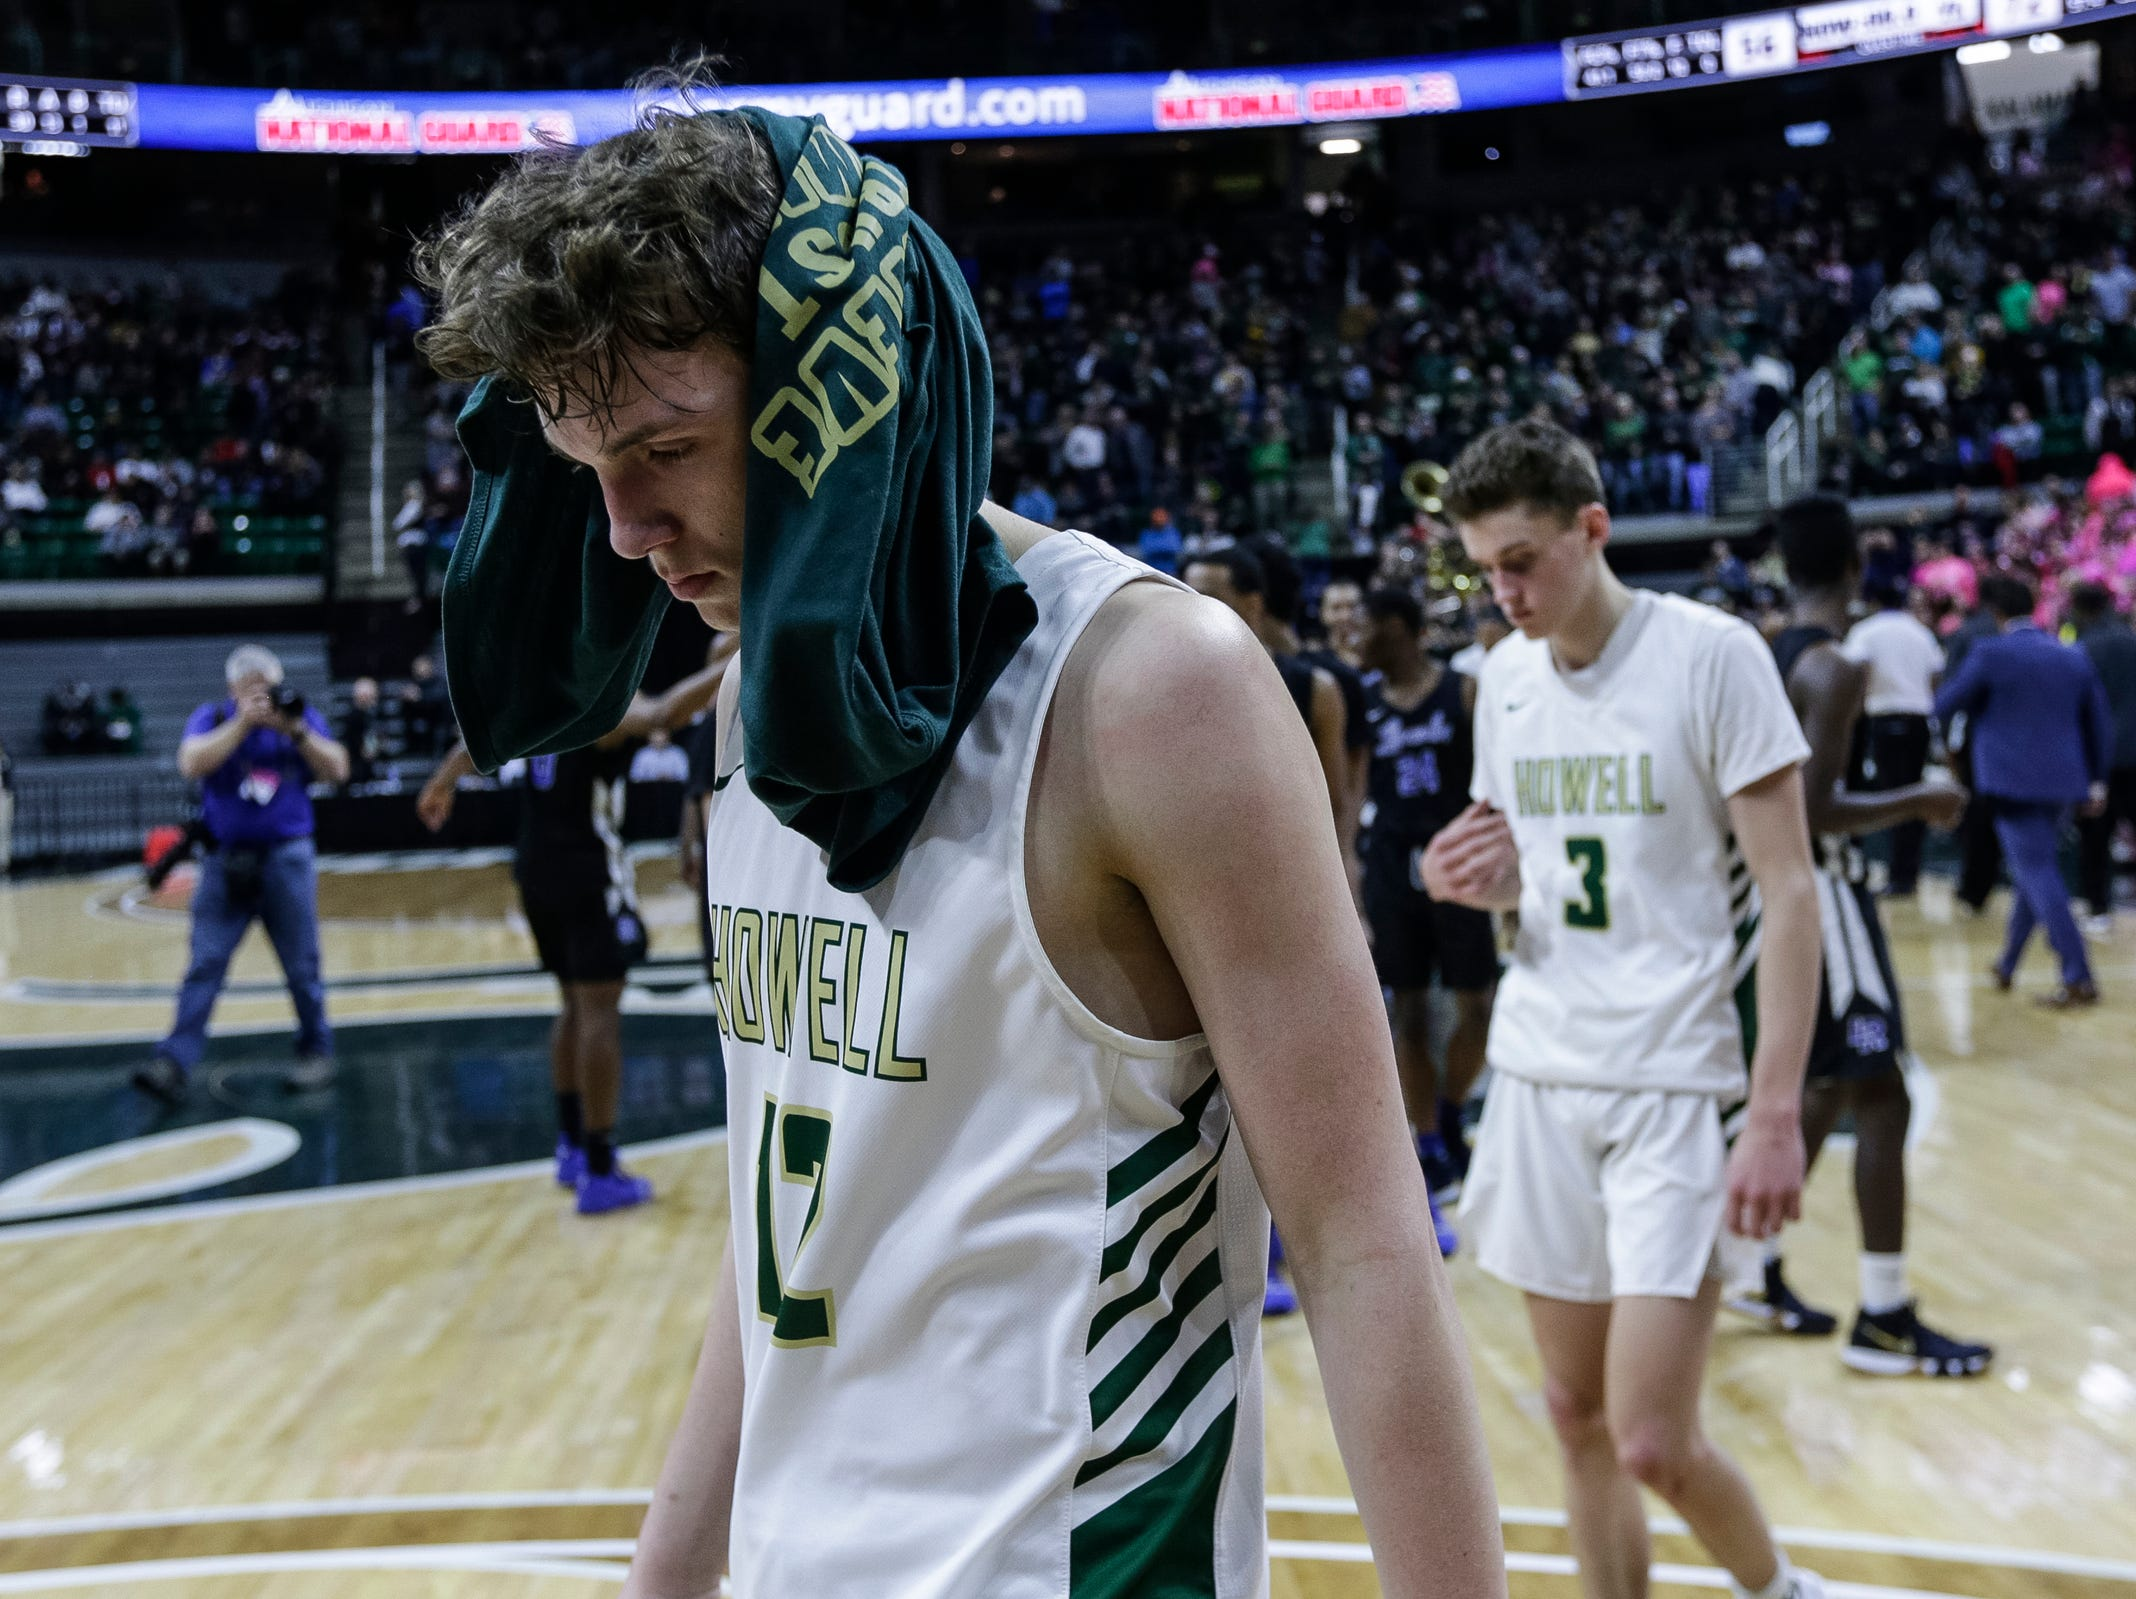 Howell's Tony Honkala (12) walks off the court with his head covered after the Highlanders lost 72-56 to Ypsilanti Lincoln at MHSAA Division 1 semifinal at the Breslin Center in East Lansing, Friday, March 15, 2019.